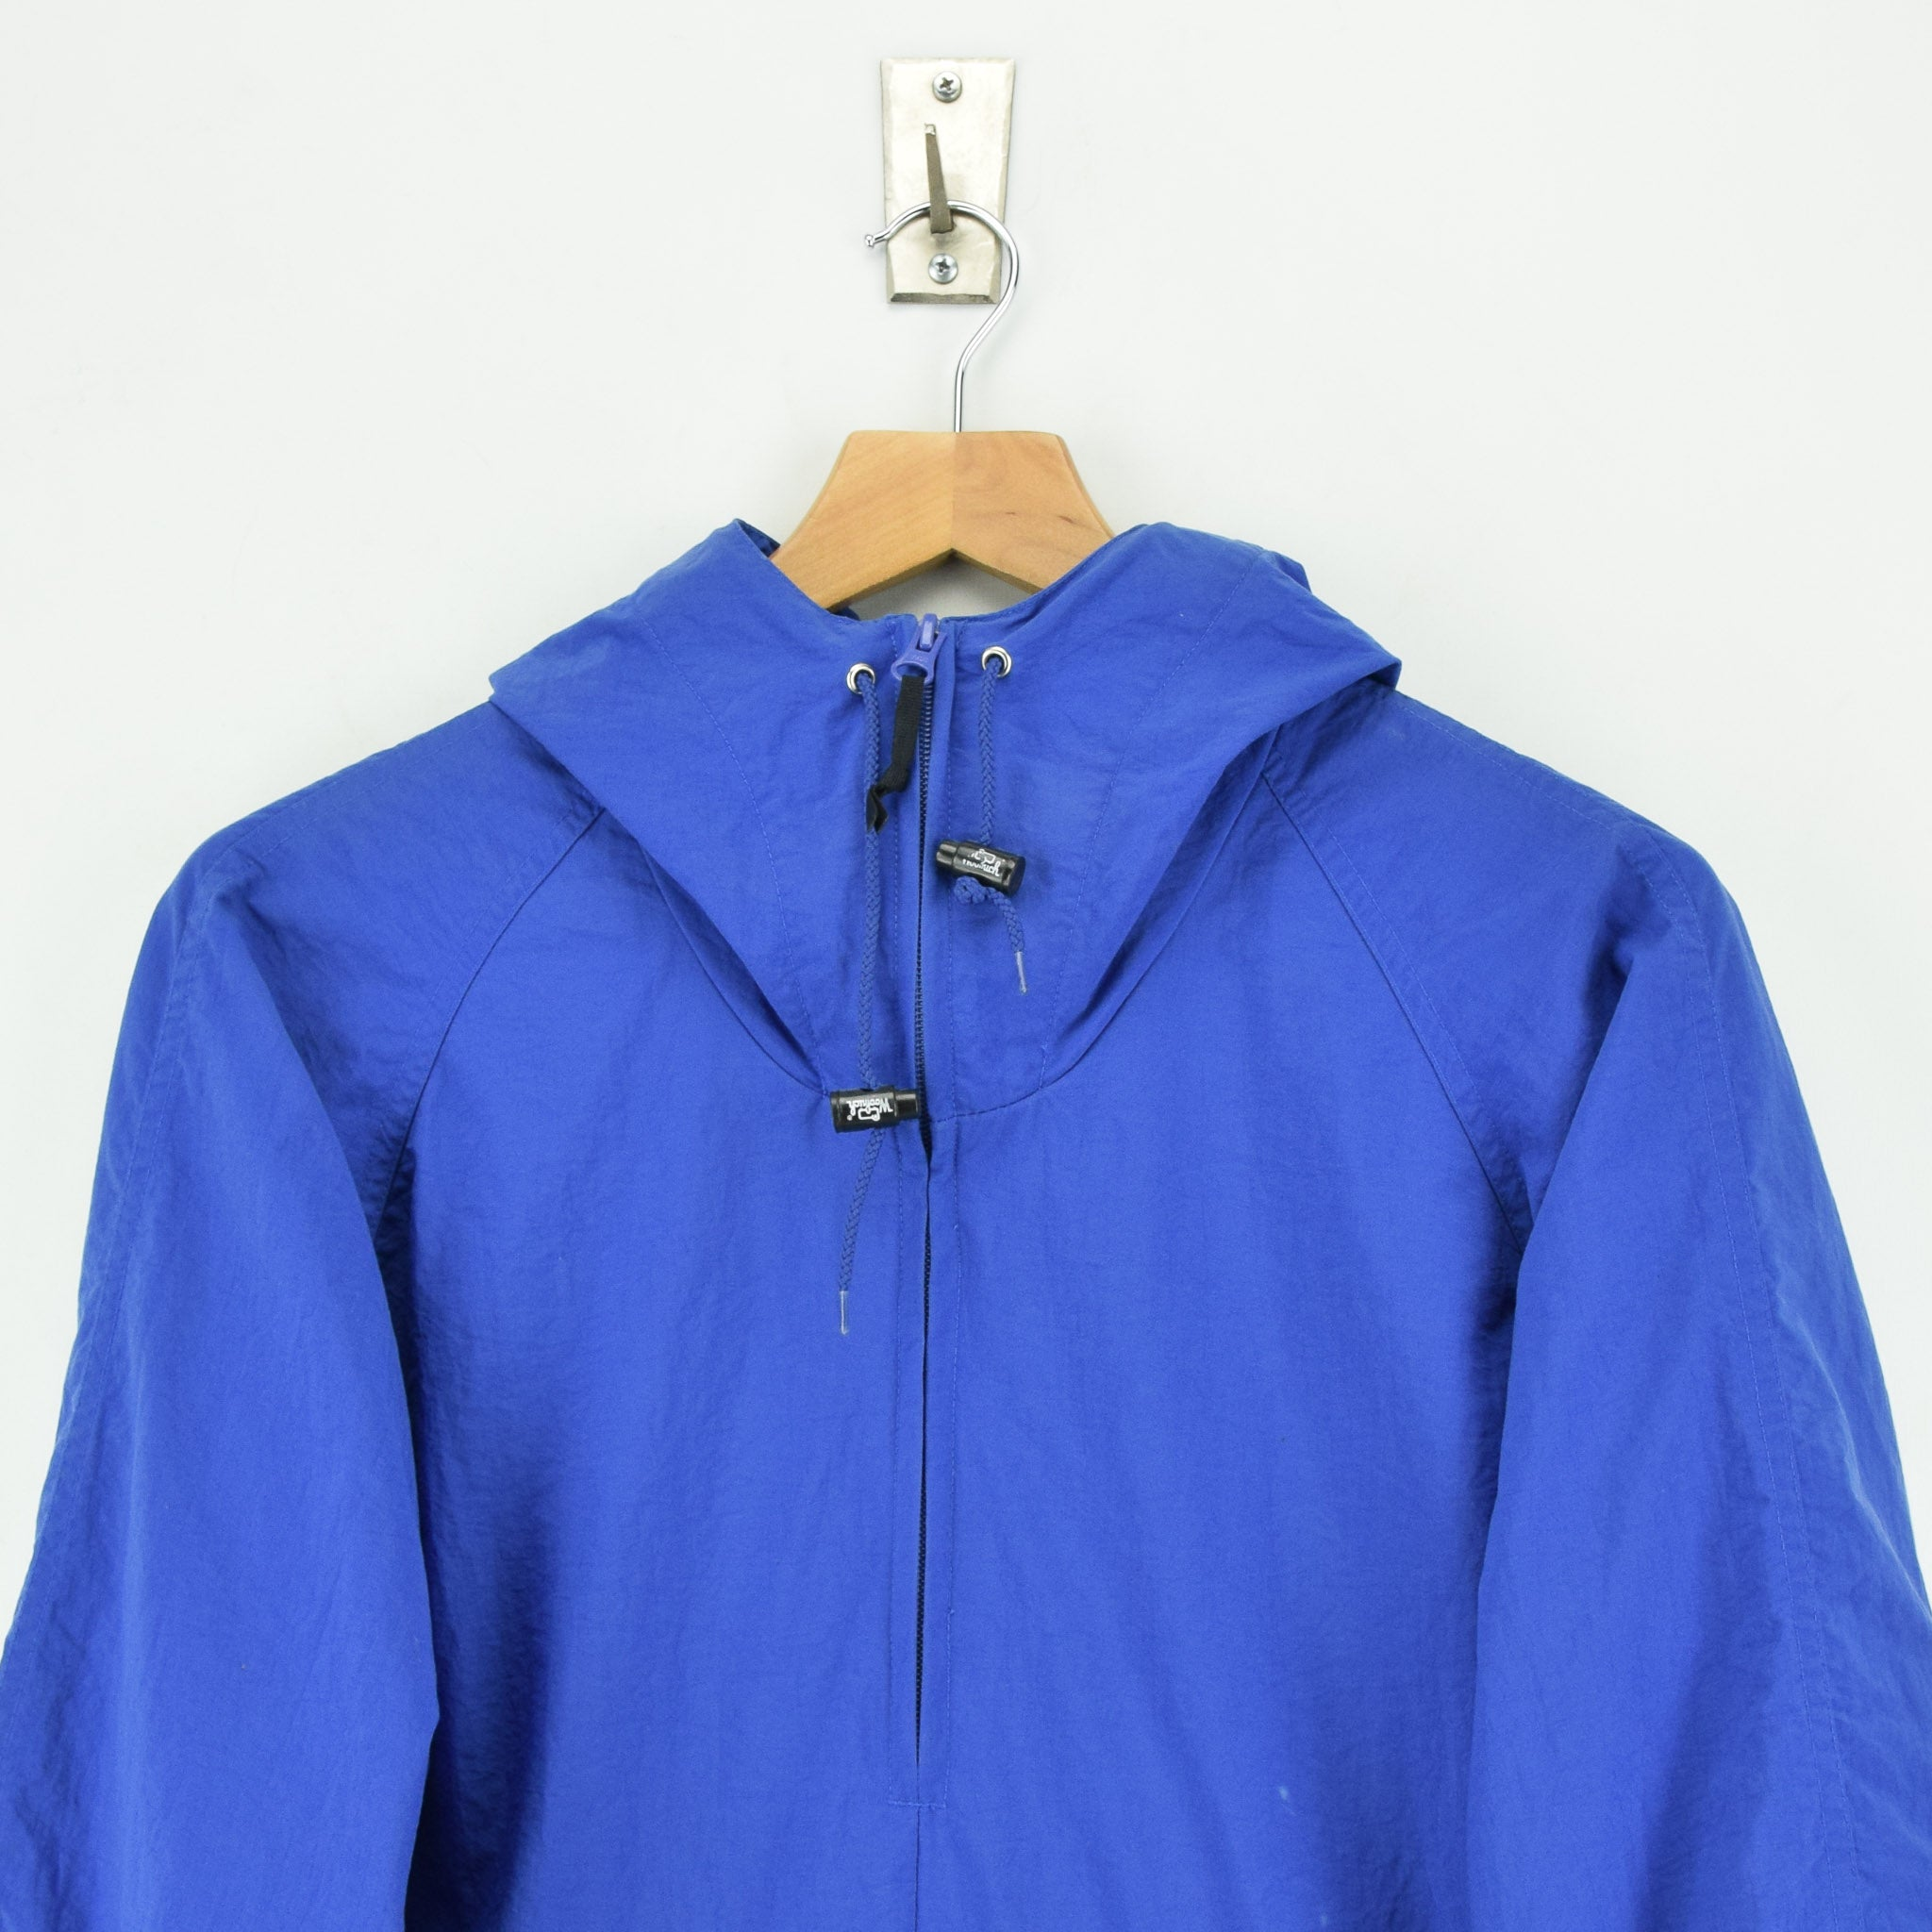 Woolrich Bright Blue Hooded Nylon Packaway Cagoule Unisex Jacket S chest